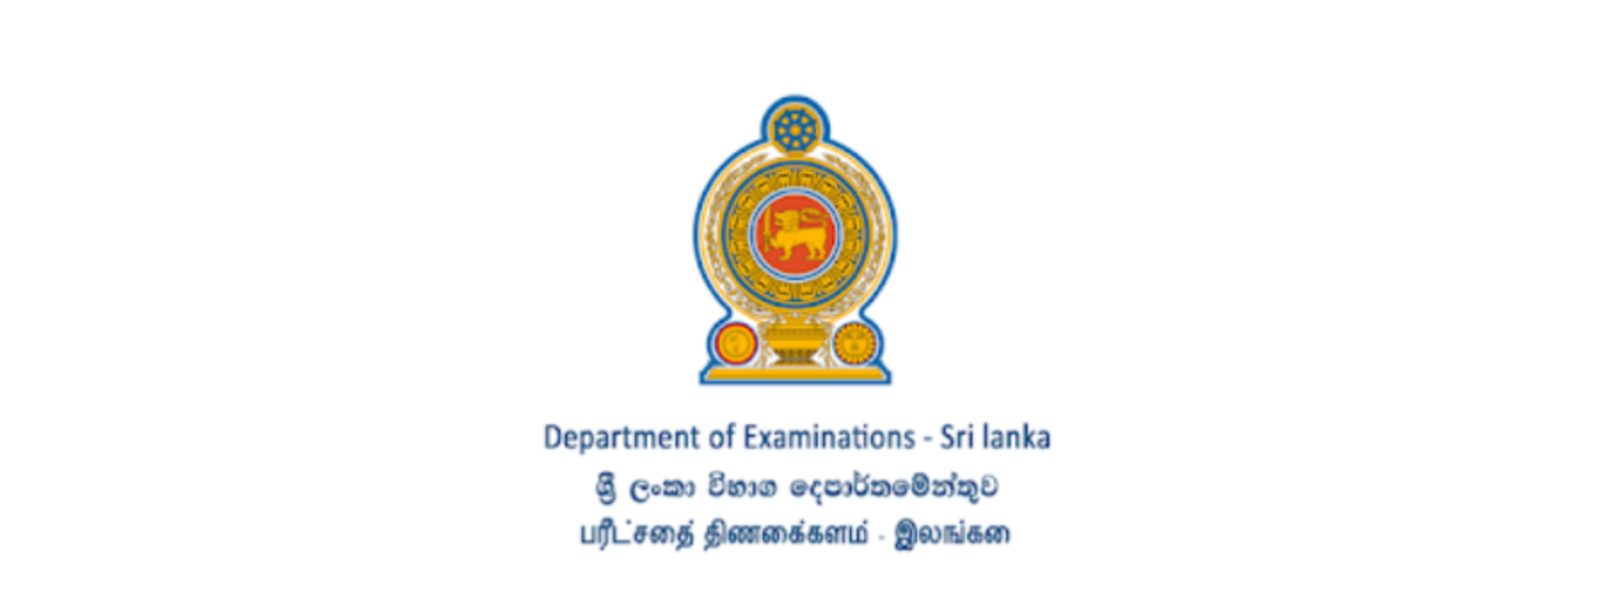 2019 GCE O/L re-correction deadline extended: Department of Examinations